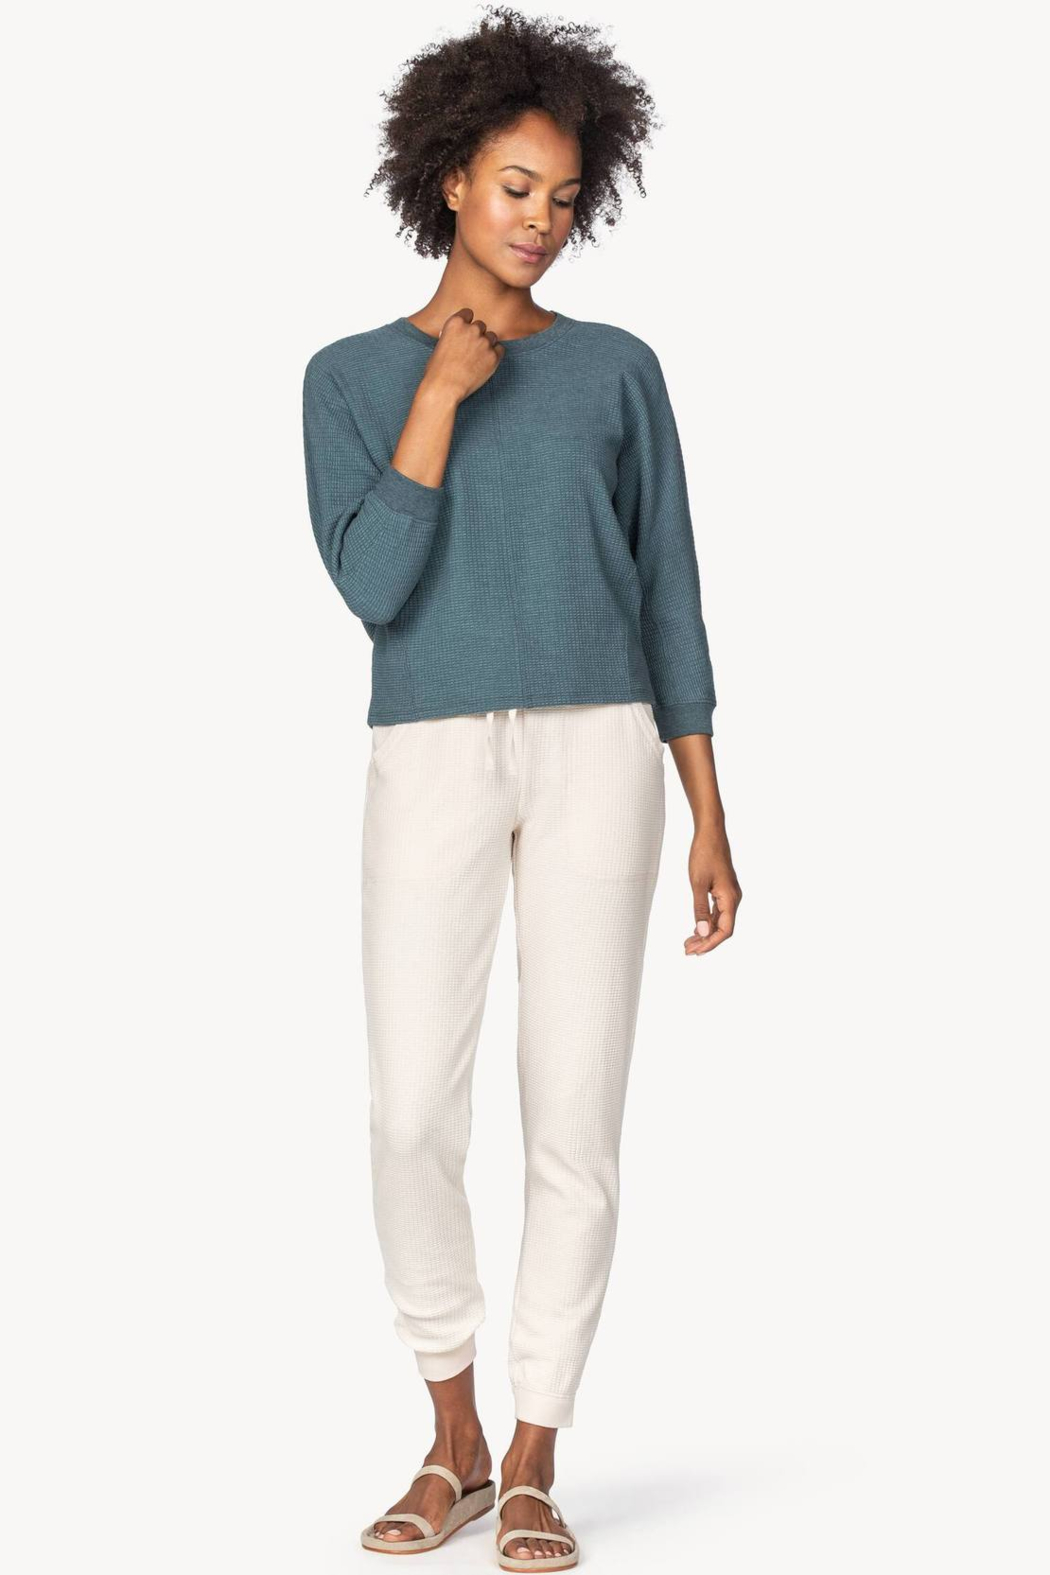 Lilla P PA1393 - Seamed Dolman Top - Front Full Image